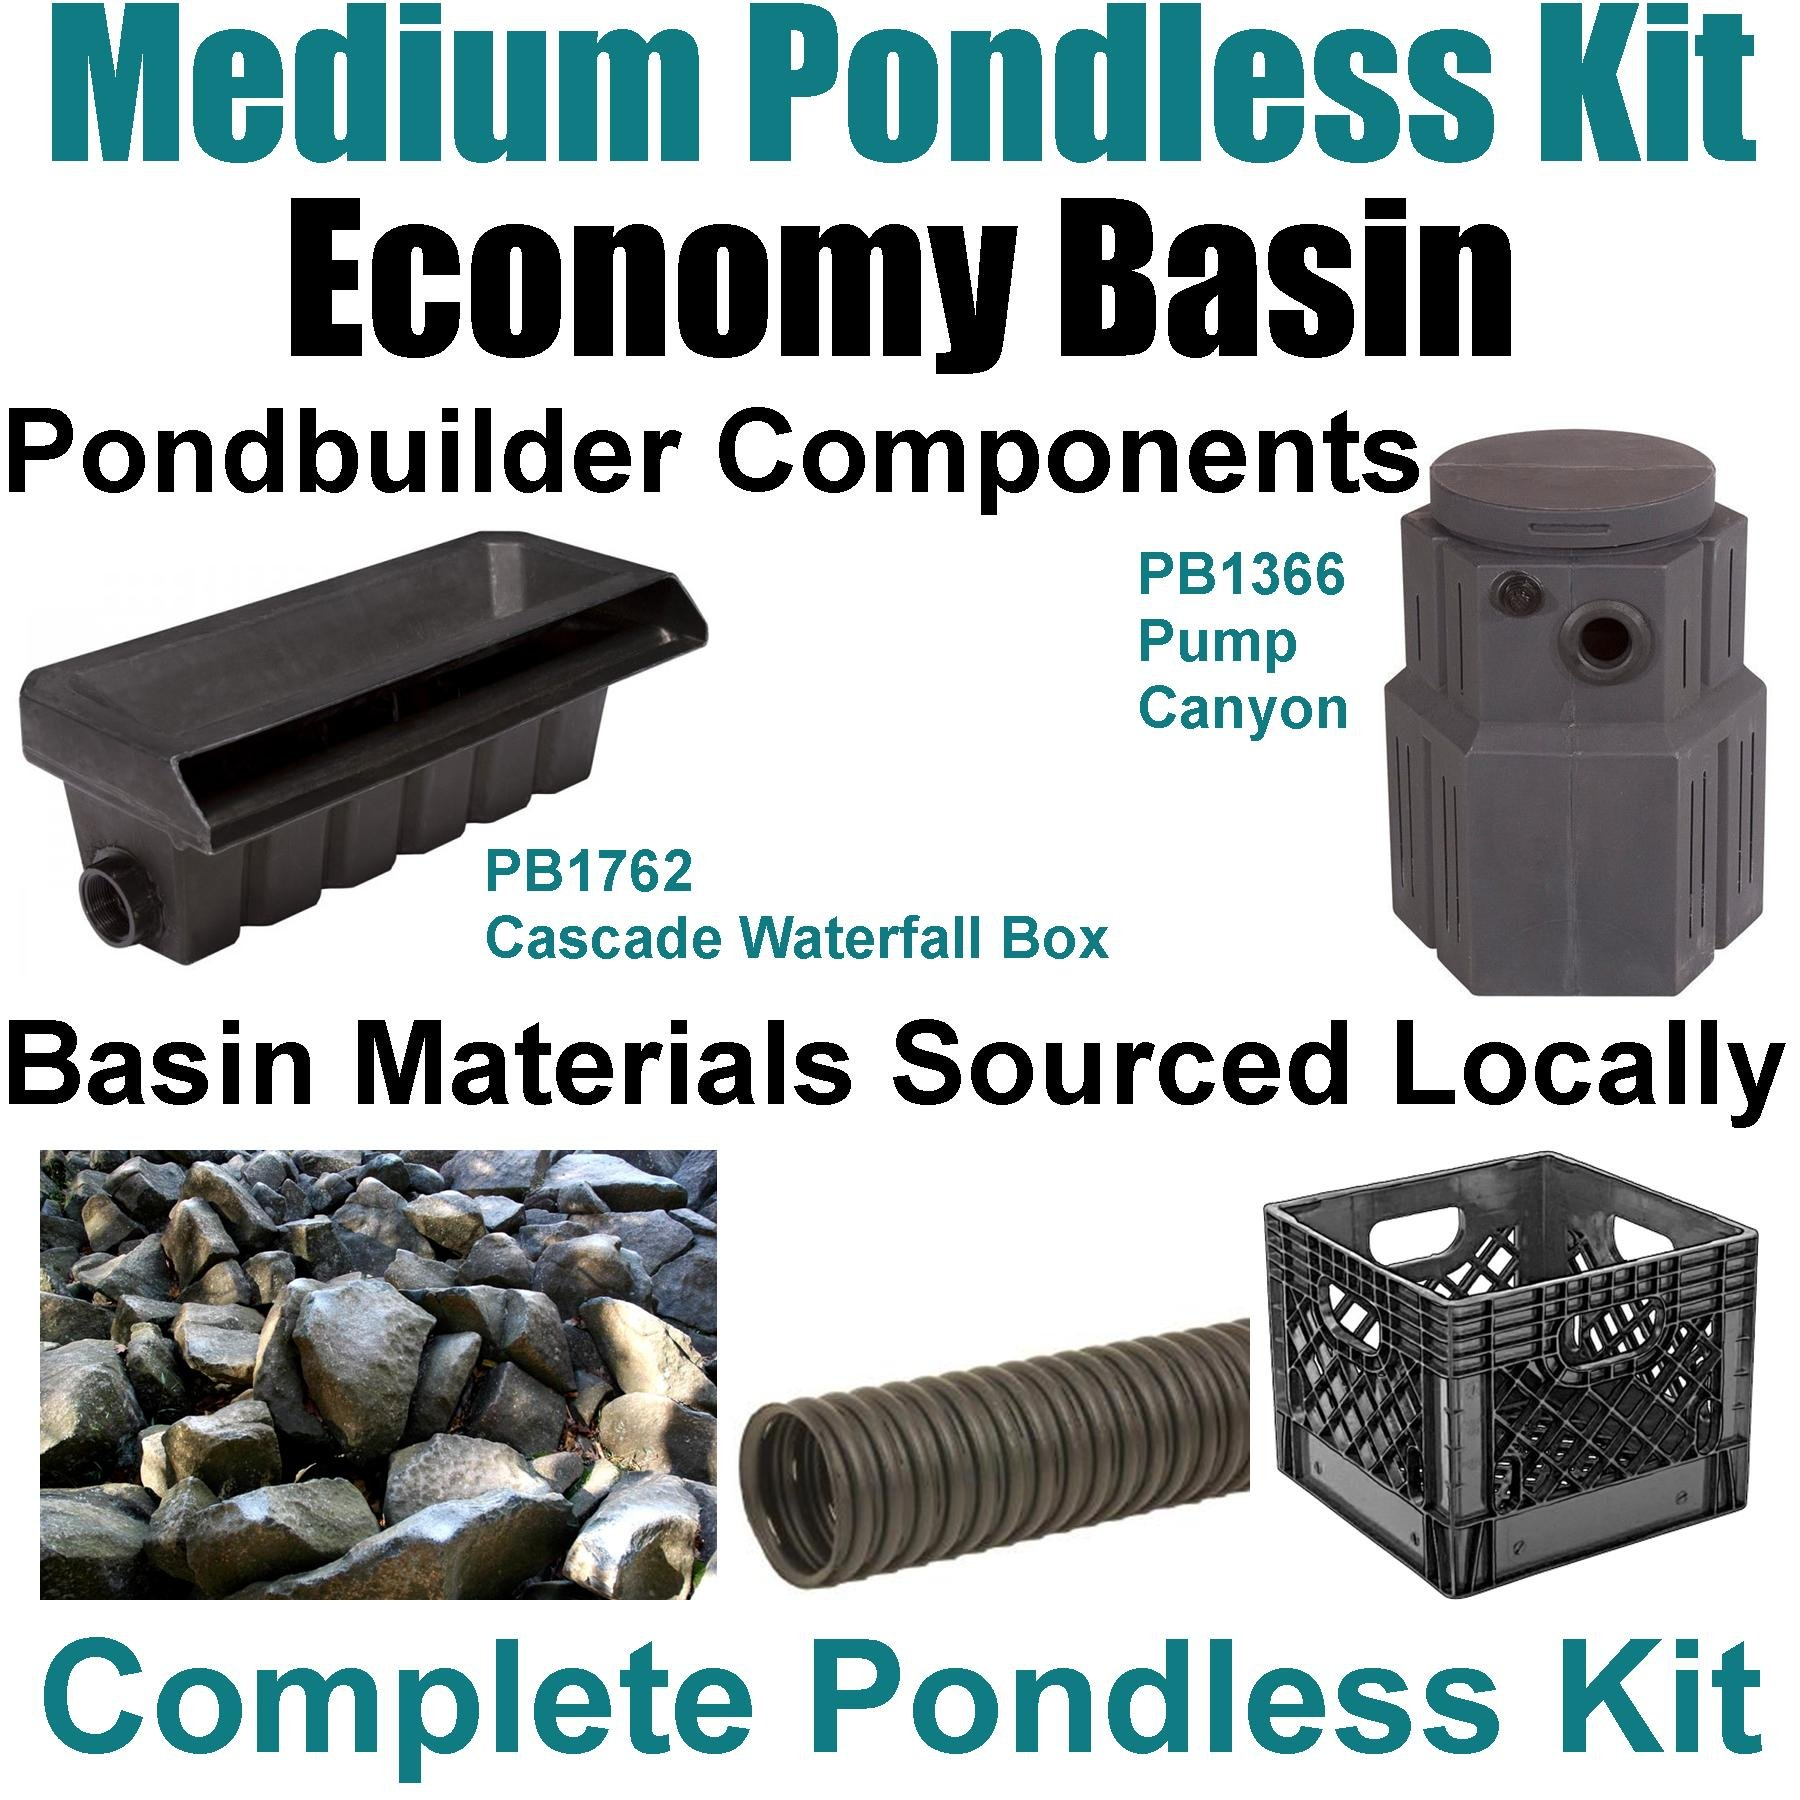 10' x 20' Medium Pondless Waterfall Kit, Economy Basin Kit - Includes Pondbuilder Waterfall Box & Pump Canyon, 4,100 GPH Pump - PMDP8